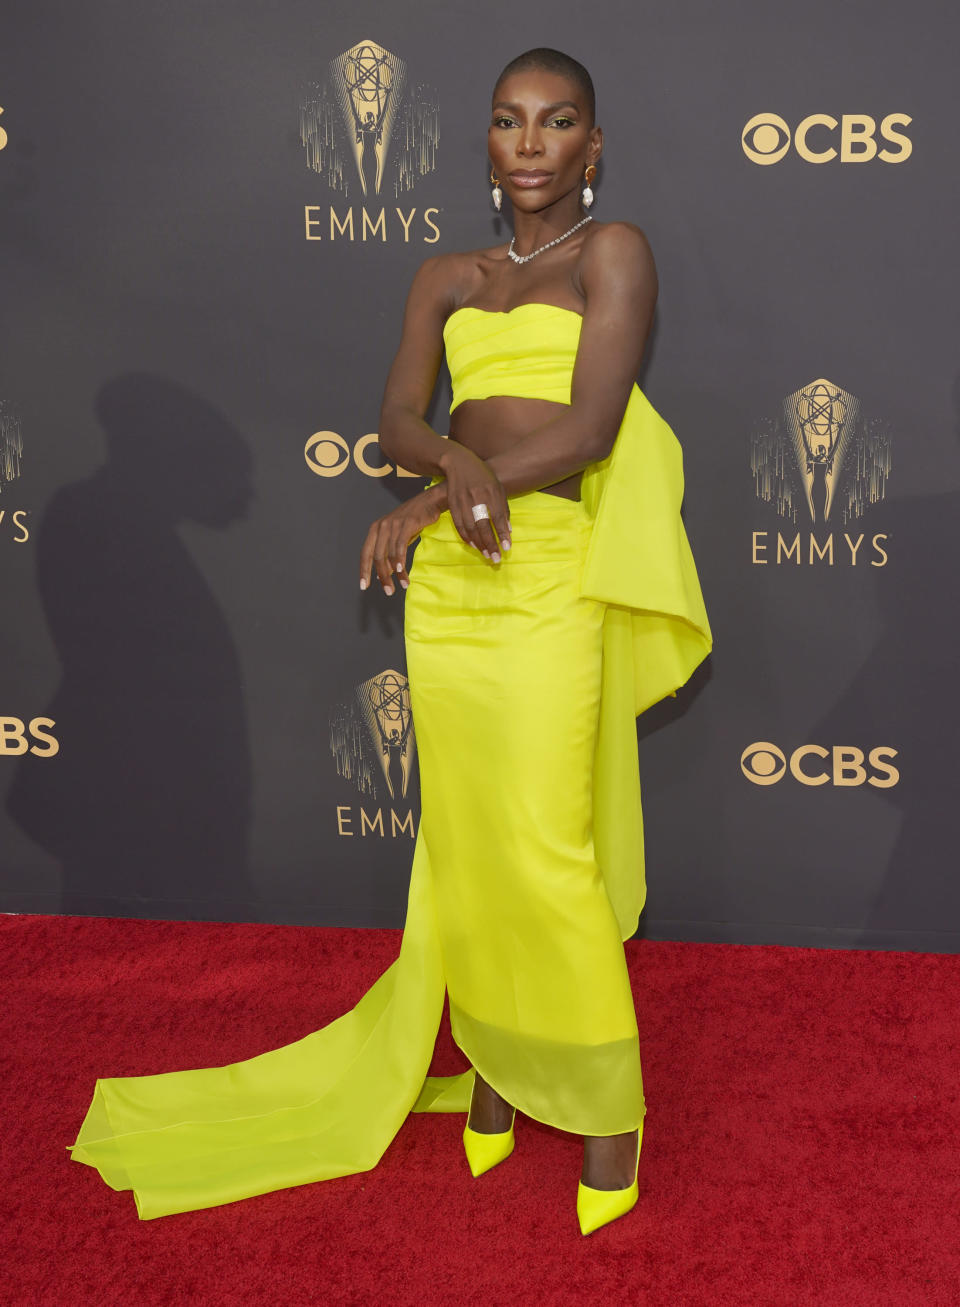 Michaela Coel arrives at the 73rd Primetime Emmy Awards on Sunday, Sept. 19, 2021, at L.A. Live in Los Angeles. (AP Photo/Chris Pizzello)